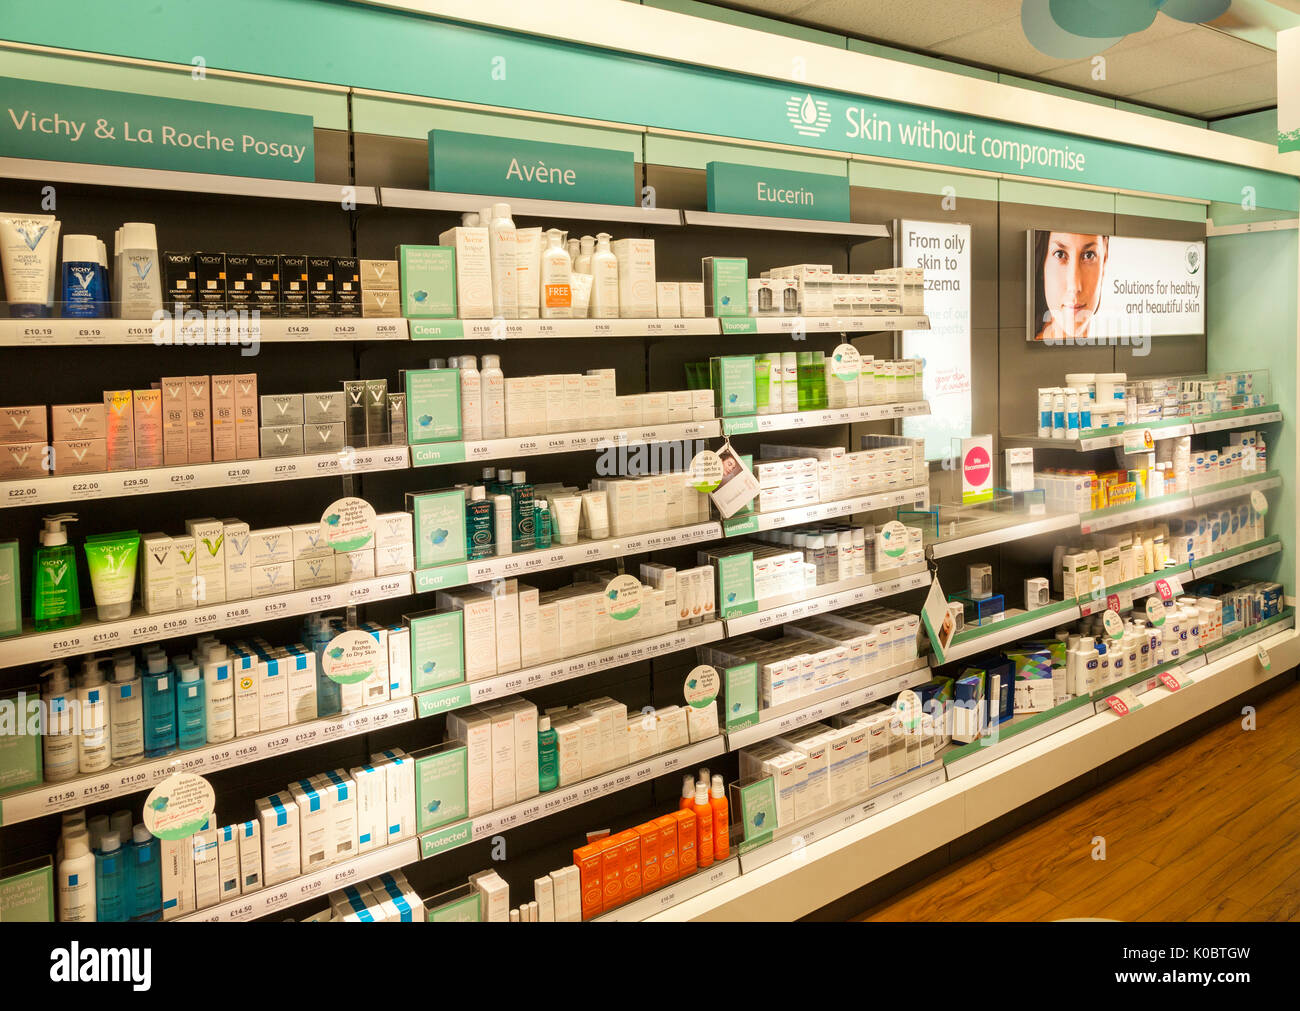 Beauty Shelf Roche Posay Stock Photos And Roche Posay Stock Images Alamy